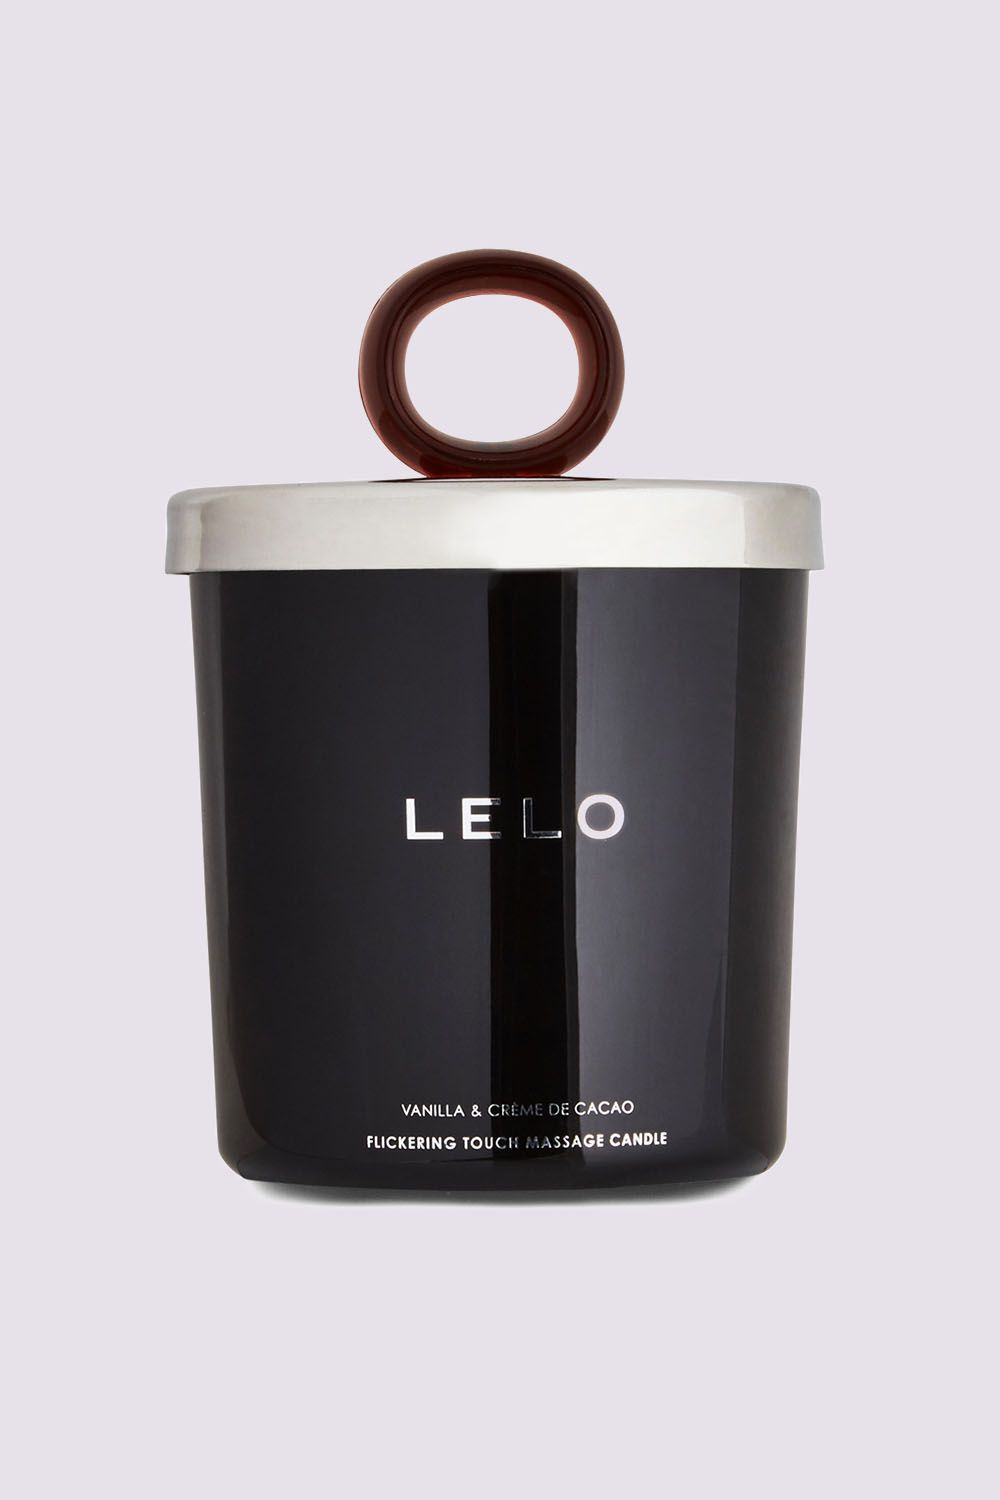 "<p>Lelo's <a href=""http://www.marieclaire.com/sex-love/g1464/best-sex-toys/?slide=4&amp&#x3B;thumbnails="" target=""_blank"" data-tracking-id=""recirc-text-link"">sex toys</a> always look like verifiable product porn, so it makes sense that their flickering massage candle would look just as chic on the night stand.&nbsp&#x3B;And they put just as much thought into the ingredients: their candles are all-natural and come in three calming&nbsp&#x3B;scents: vanilla, snow pea, and a combo of black pepper and pomegranate.&nbsp&#x3B;</p><p>$35&#x3B;&nbsp&#x3B;<a href=""https://www.lelo.com/flickering-touch-massage-candle"" target=""_blank"" data-tracking-id=""recirc-text-link"">lelo.com</a>.<span class=""redactor-invisible-space"" data-verified=""redactor"" data-redactor-tag=""span"" data-redactor-class=""redactor-invisible-space""></span><br></p>"